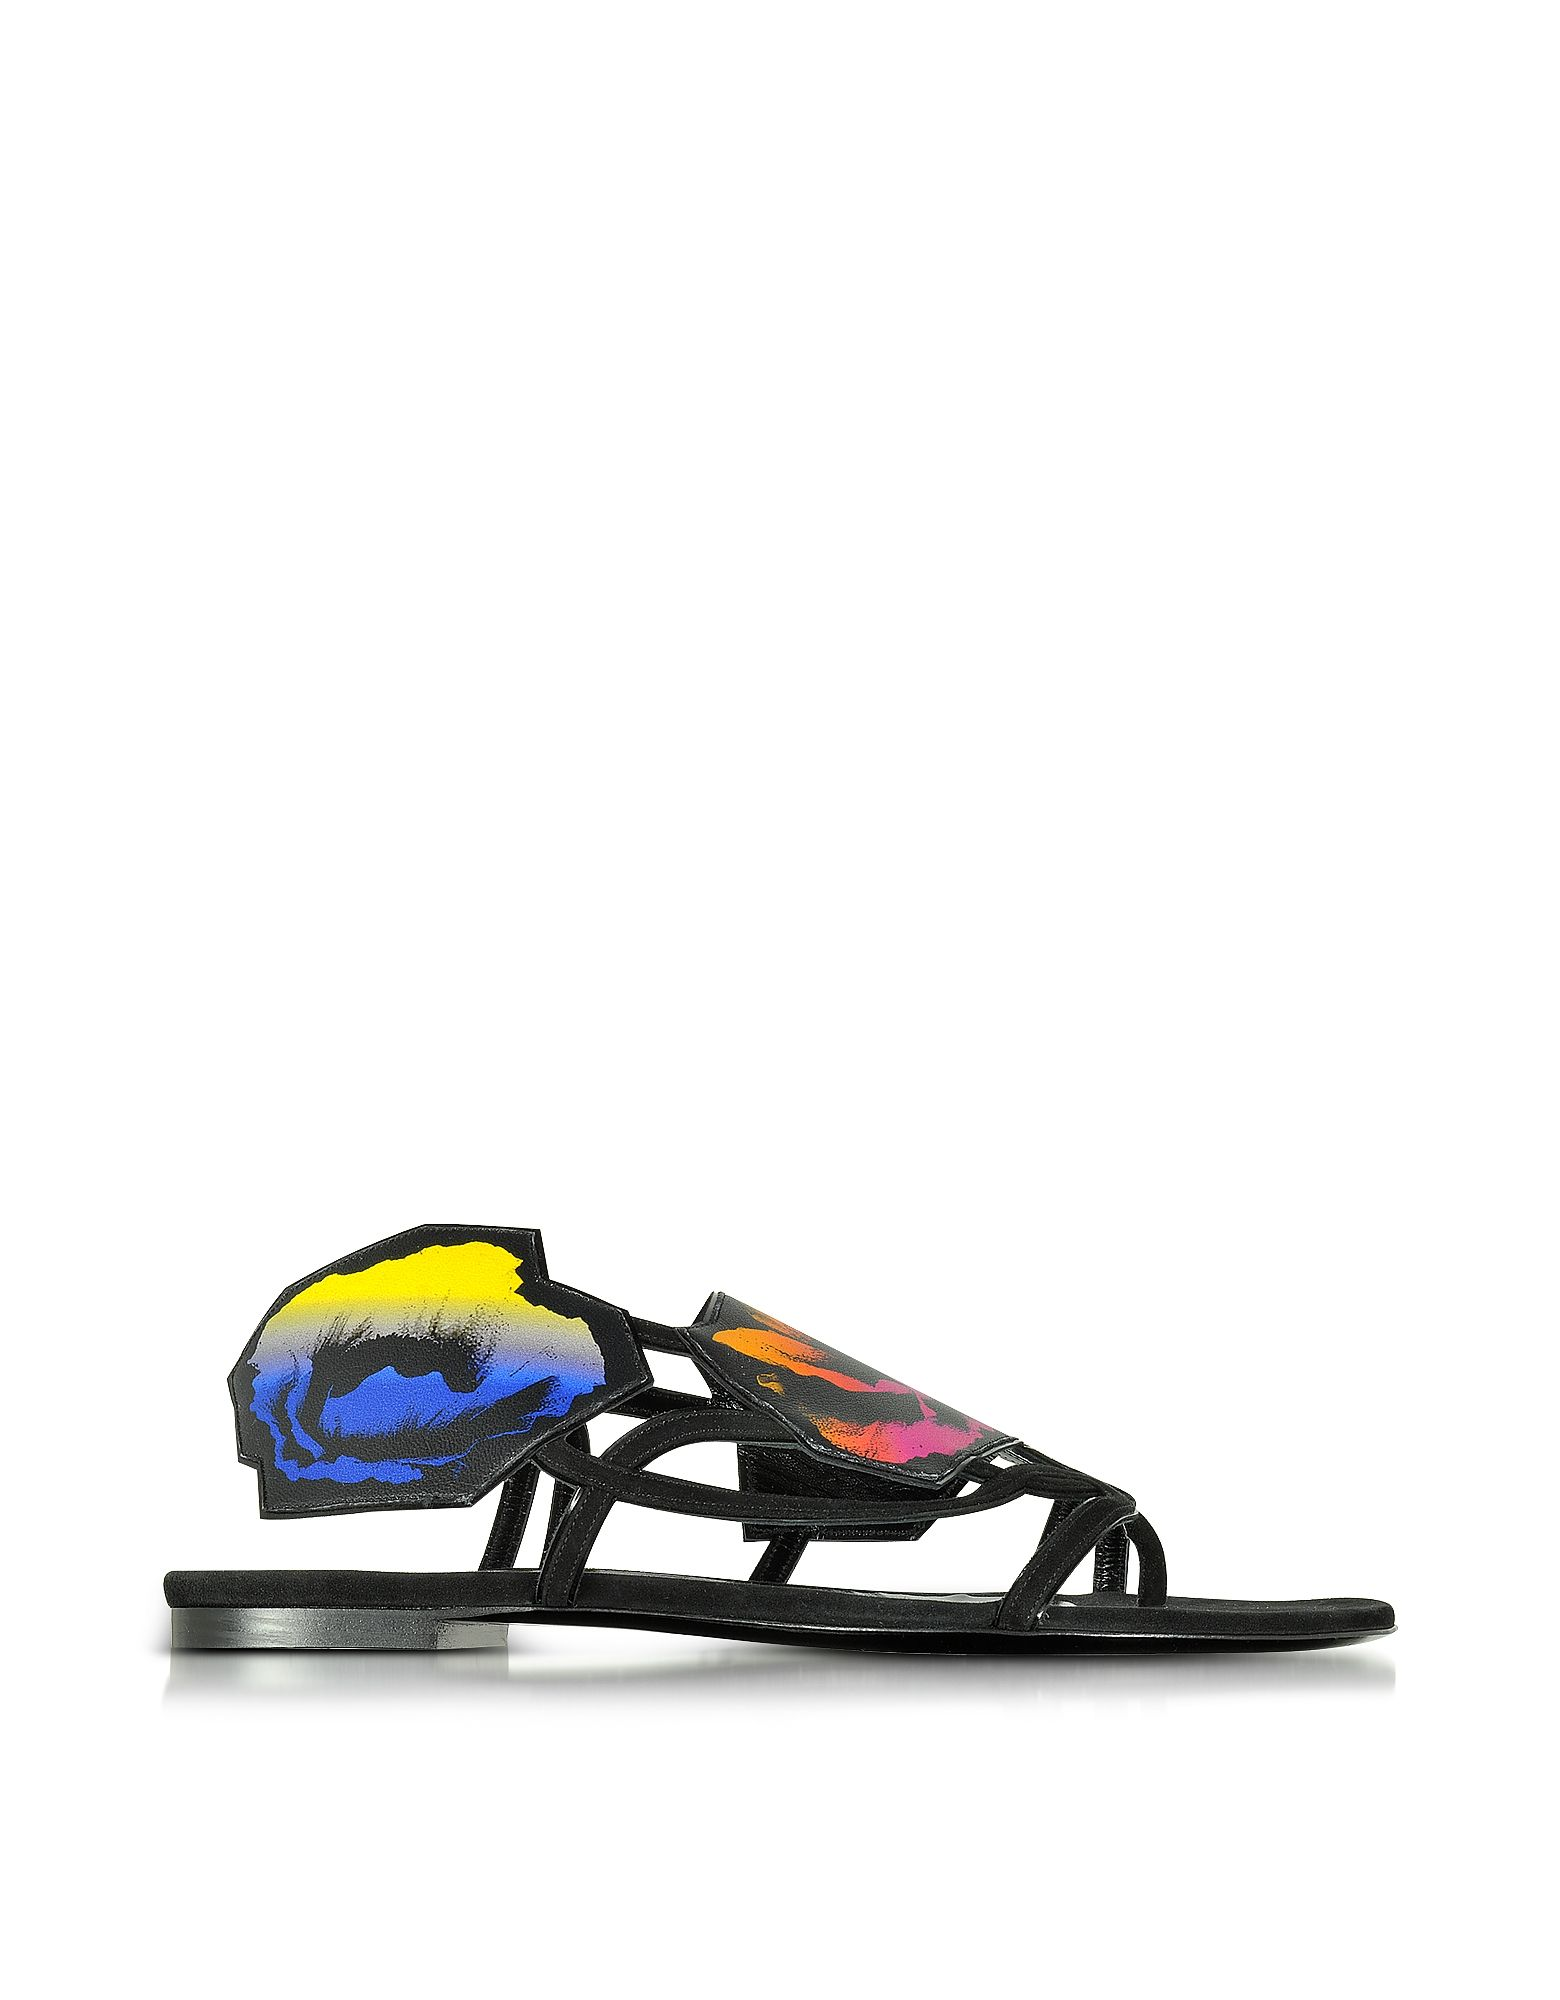 Pierre Hardy Multicolor Leather And Suede Poppy Flat Sandals In Black